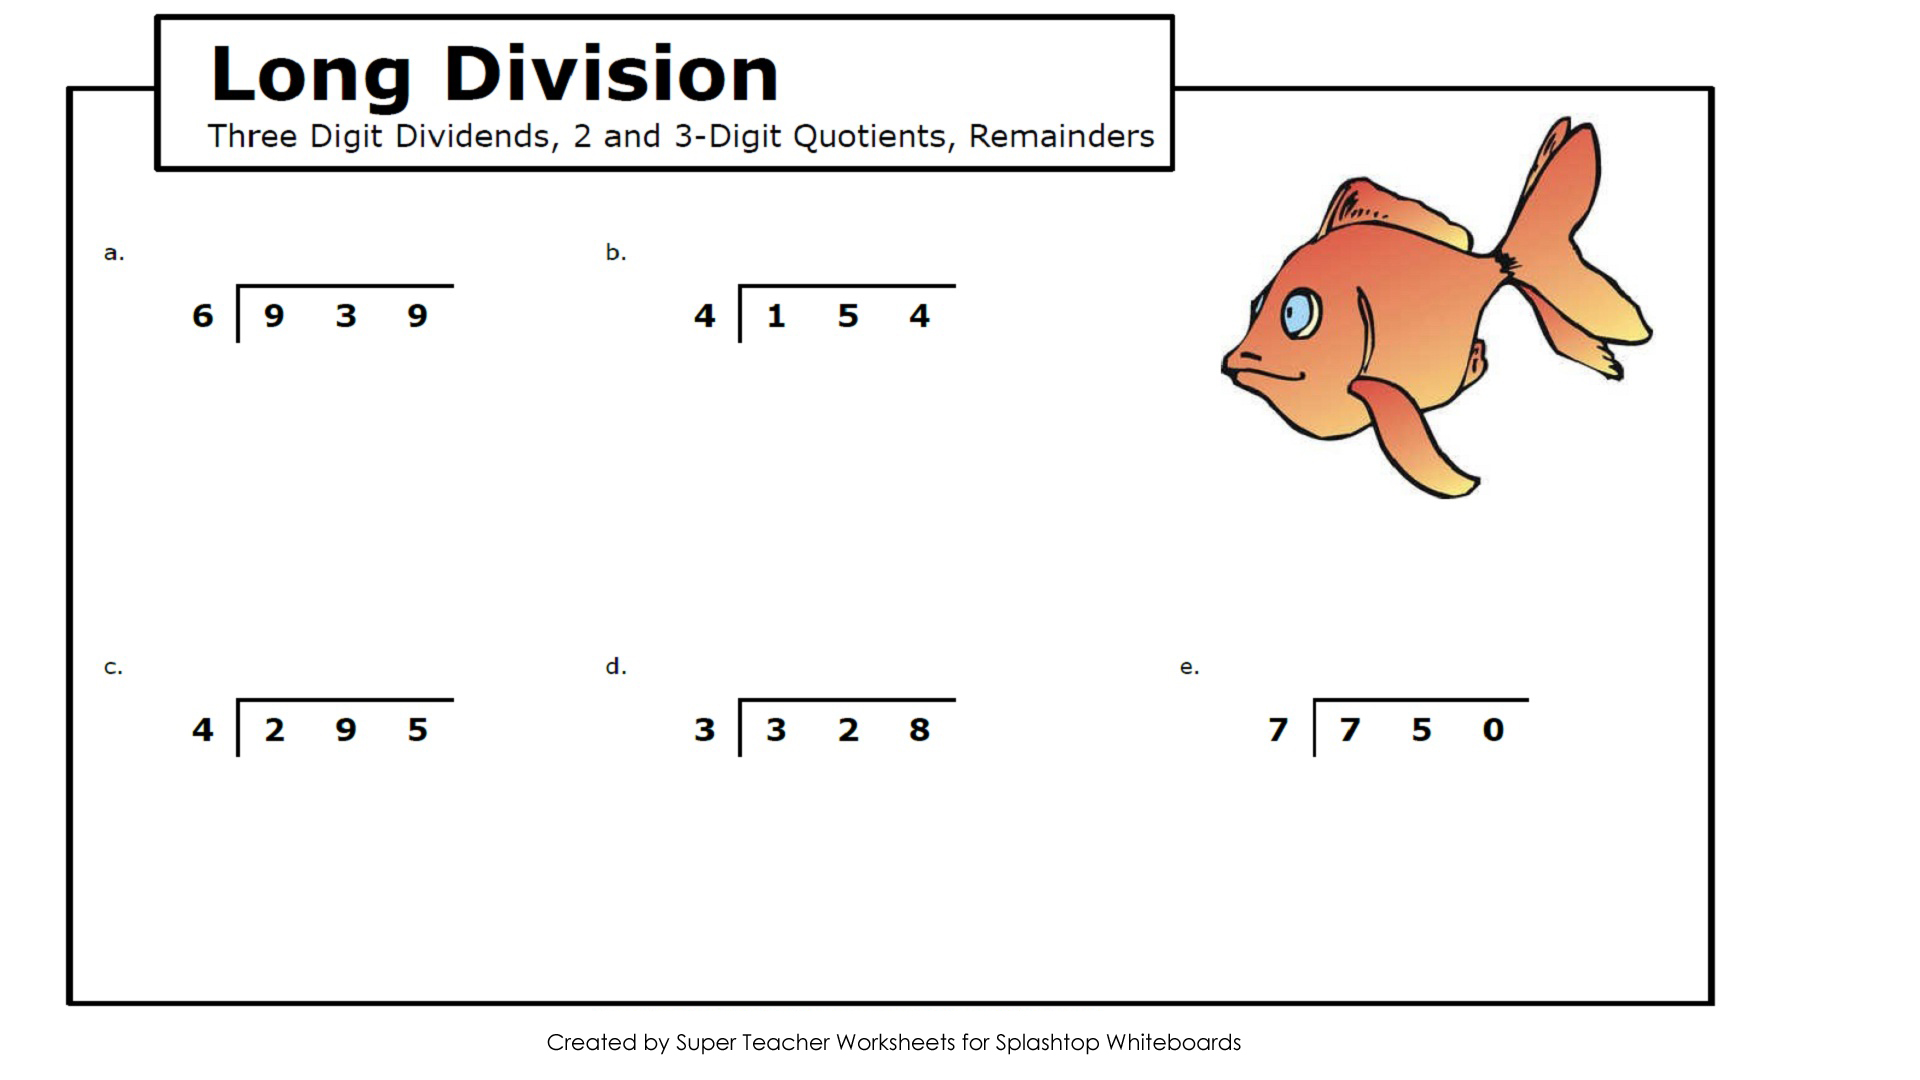 Worksheets Super Teacher Worksheets 3rd Grade splashtop whiteboard background graphics long division 3 digit dividends